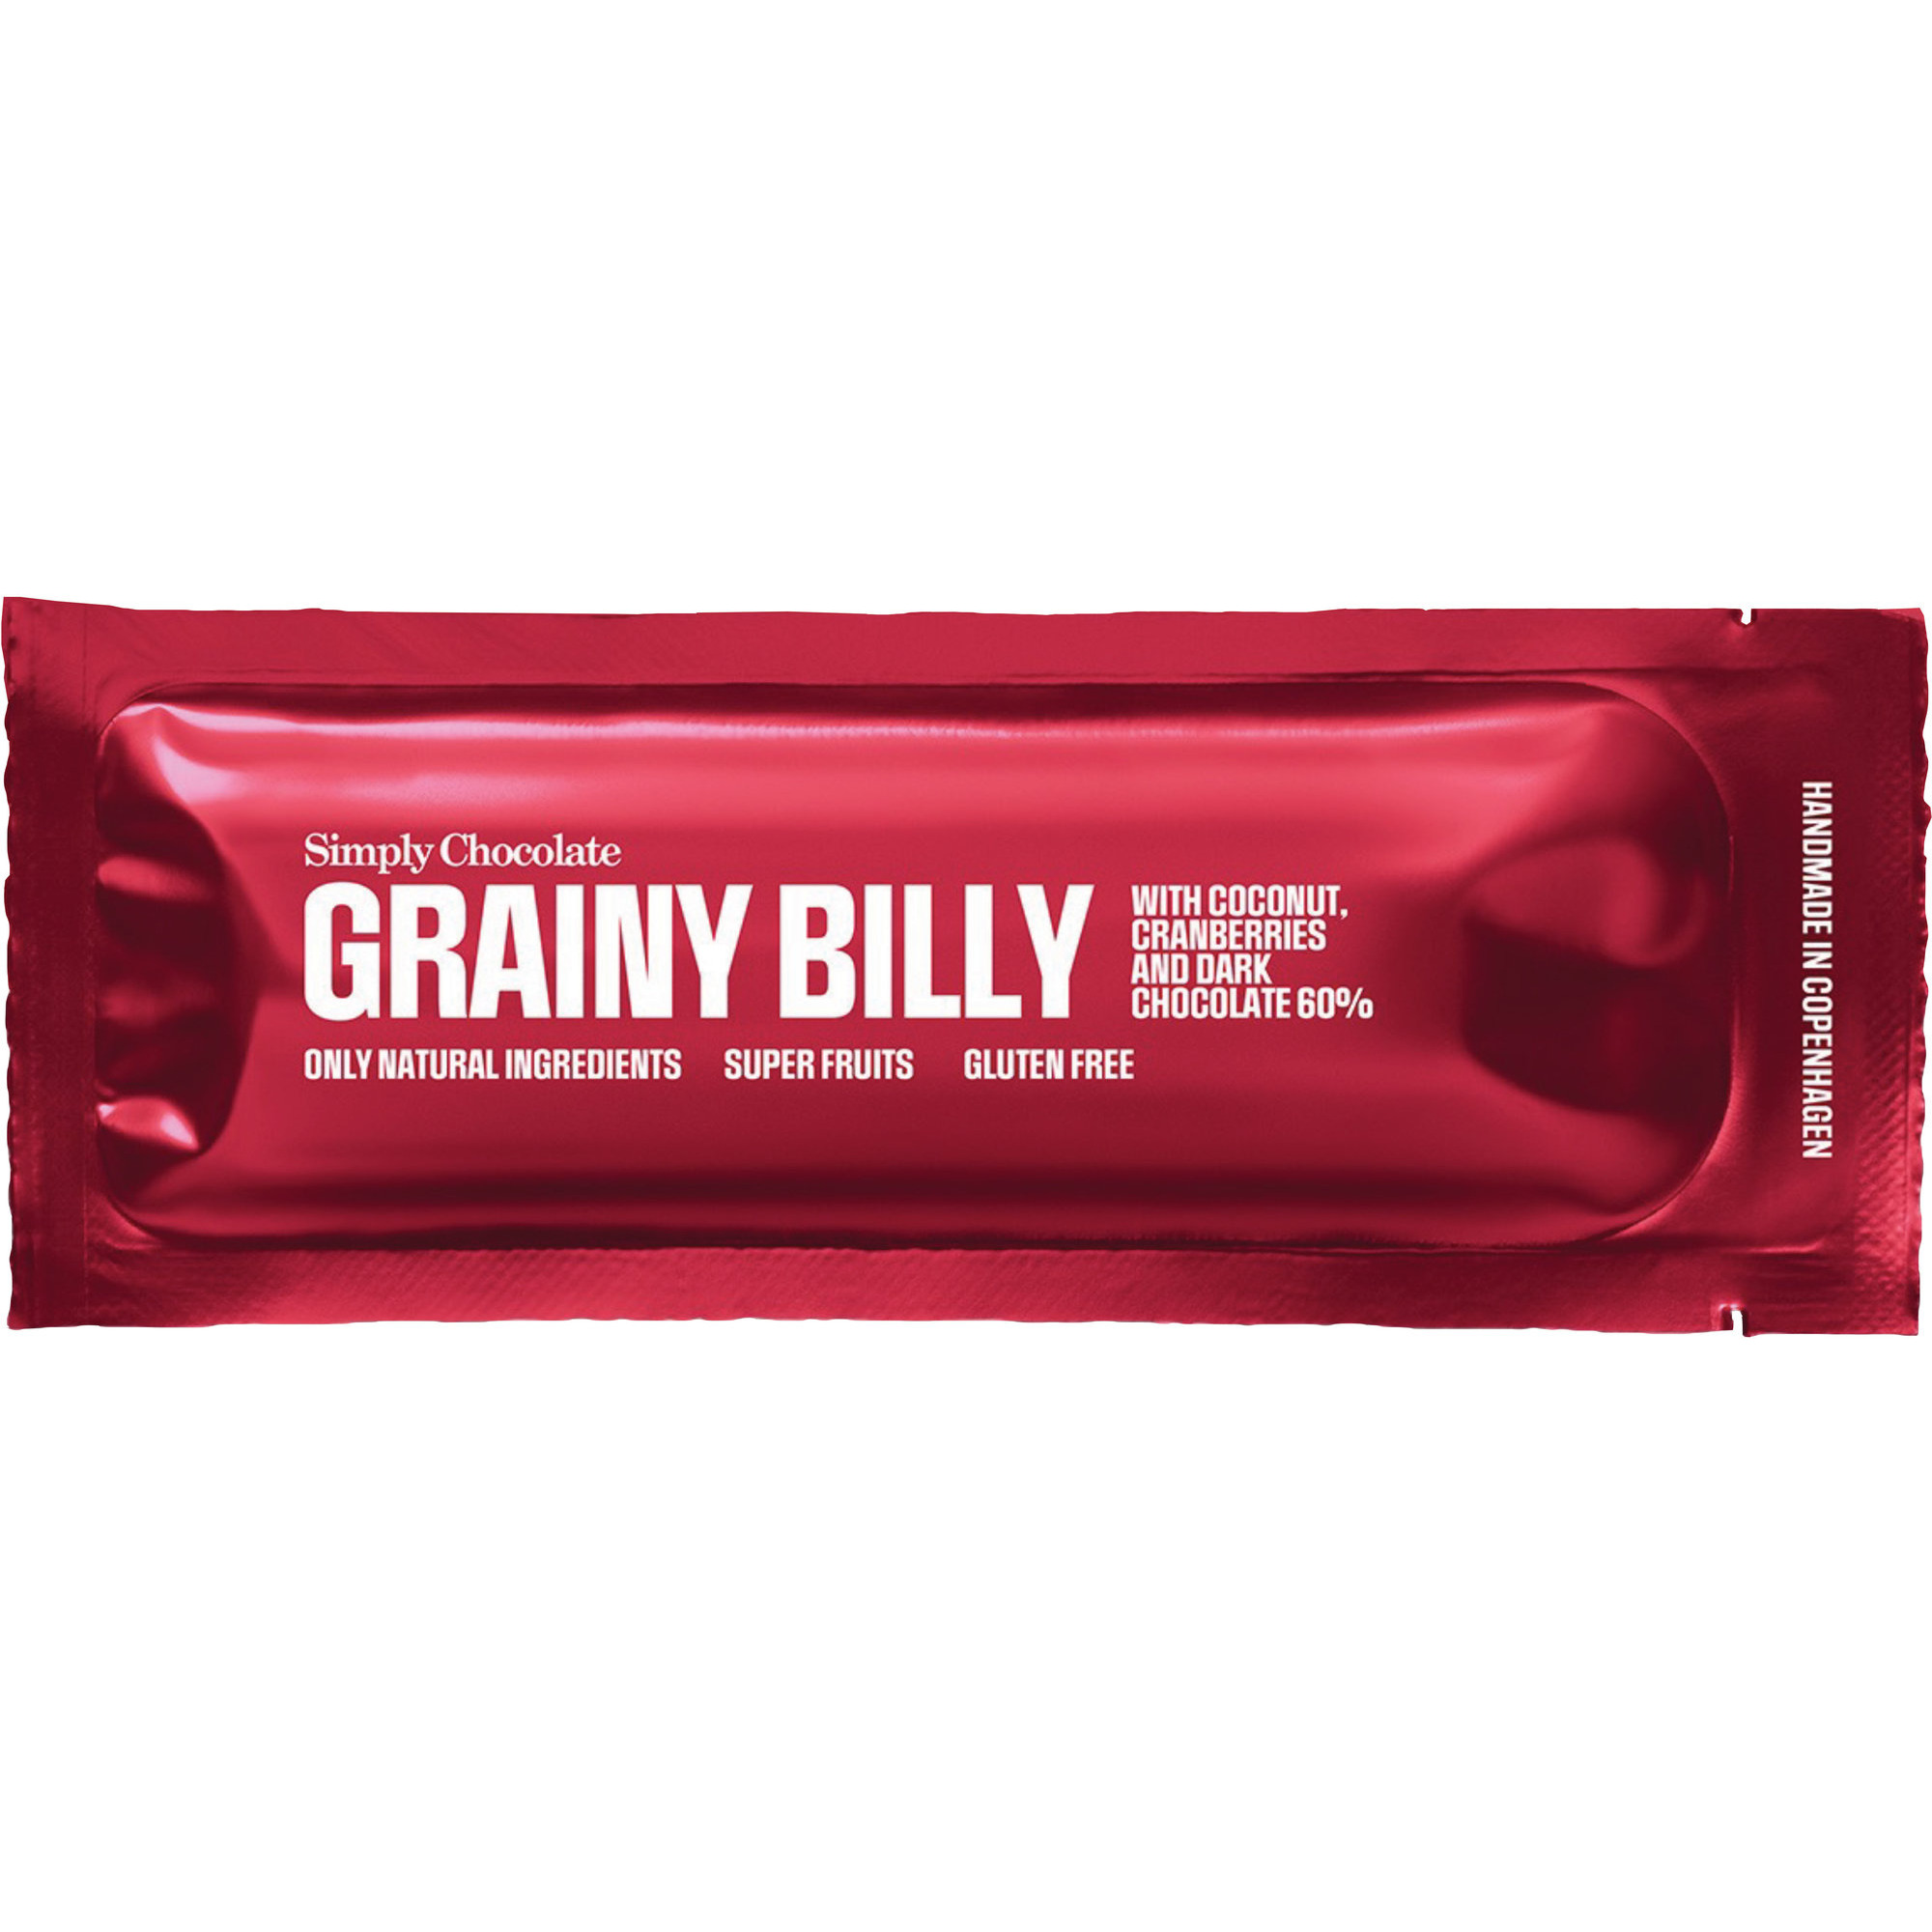 Simply Chocolate Grainy Billy bar